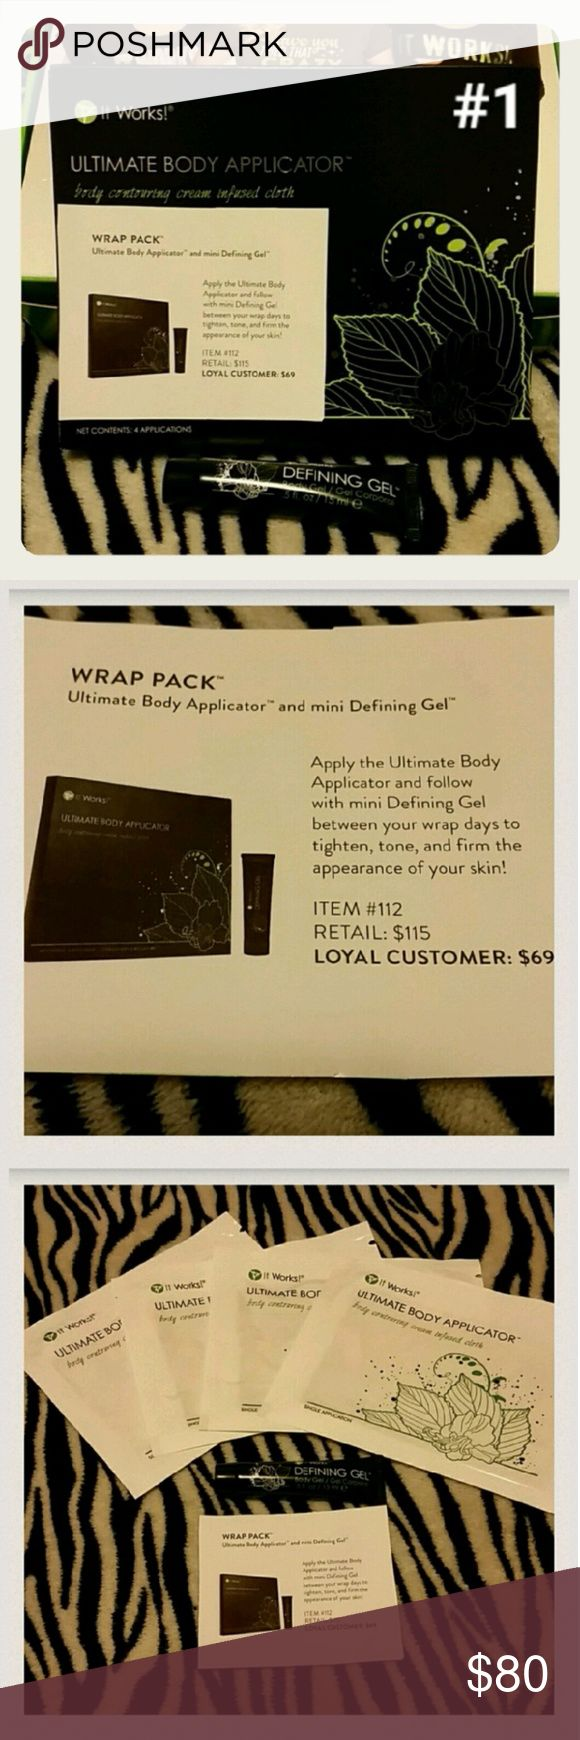 It Works Wrap Pack WRAP PACK from It Works! Ultimate Body Applicator(4 wraps) & mini Defining Gel. Apply the Ultimate Body Applicator and follow with mini Defining Gel between your wrap days to tighten, tone, and firm the appearance of your skin! Open to offers and I love to BUNDLE! It Works! Other